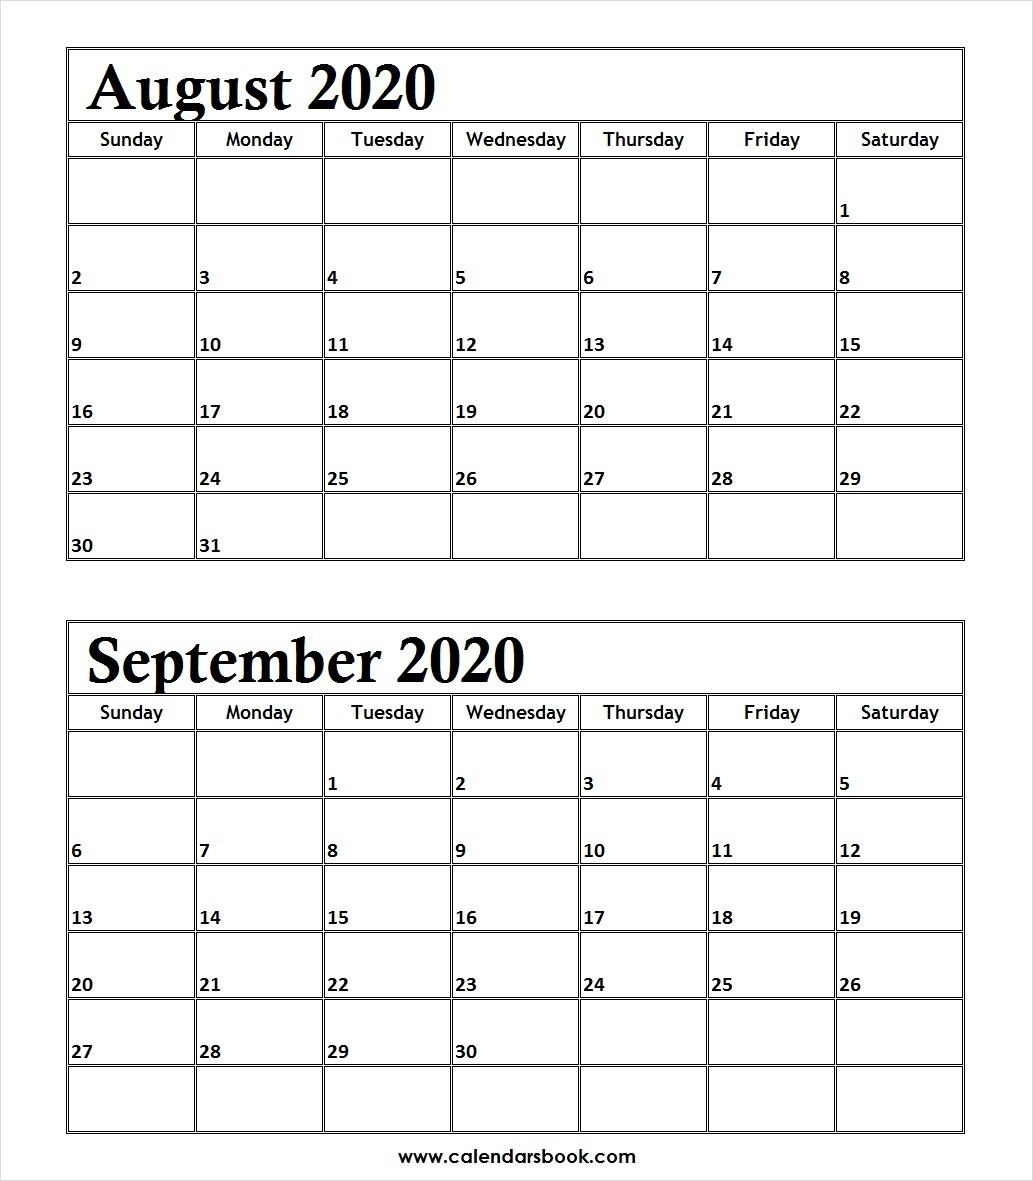 Behavior Weekly Calendar Template Free | Example Calendar with Calender August And September 2020